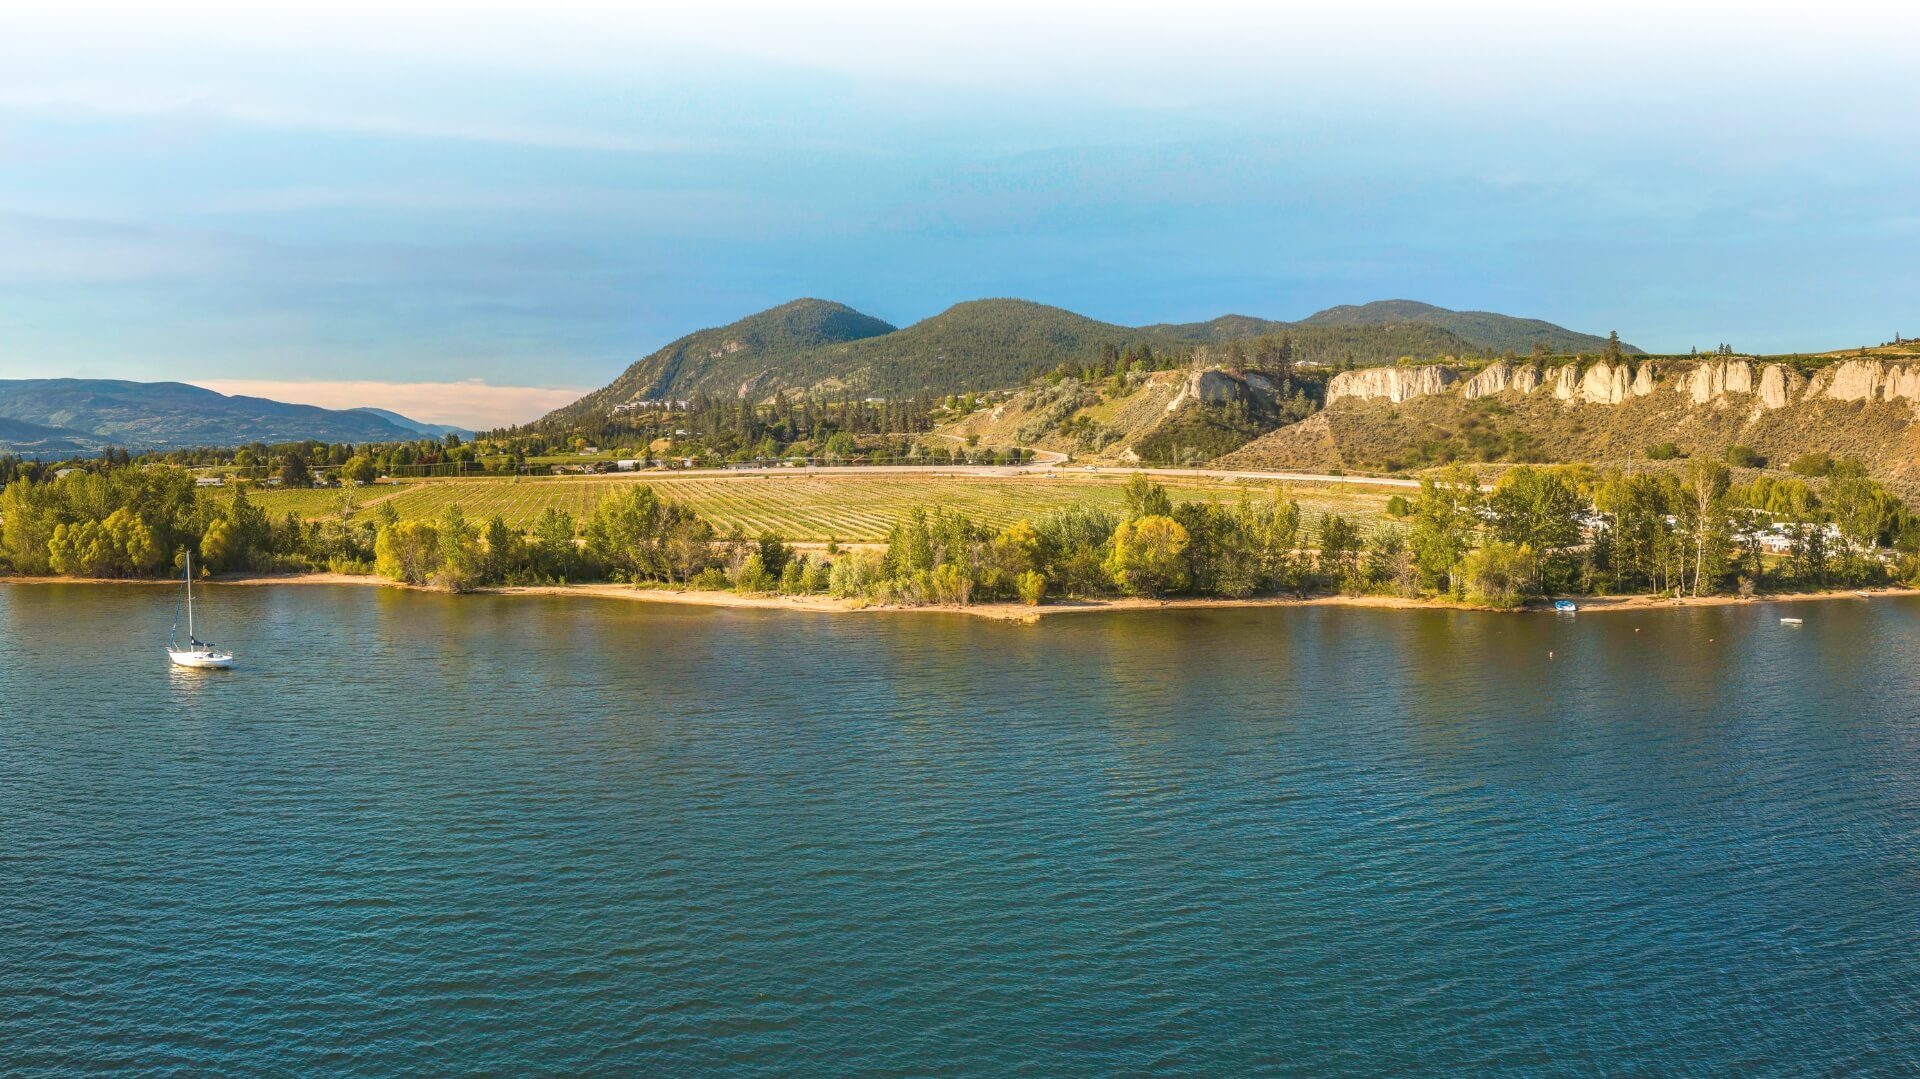 A RARE OPPORTUNITY TO OWN A LAKEHOUSE ON THE SHORE OF LAKE OKANAGAN